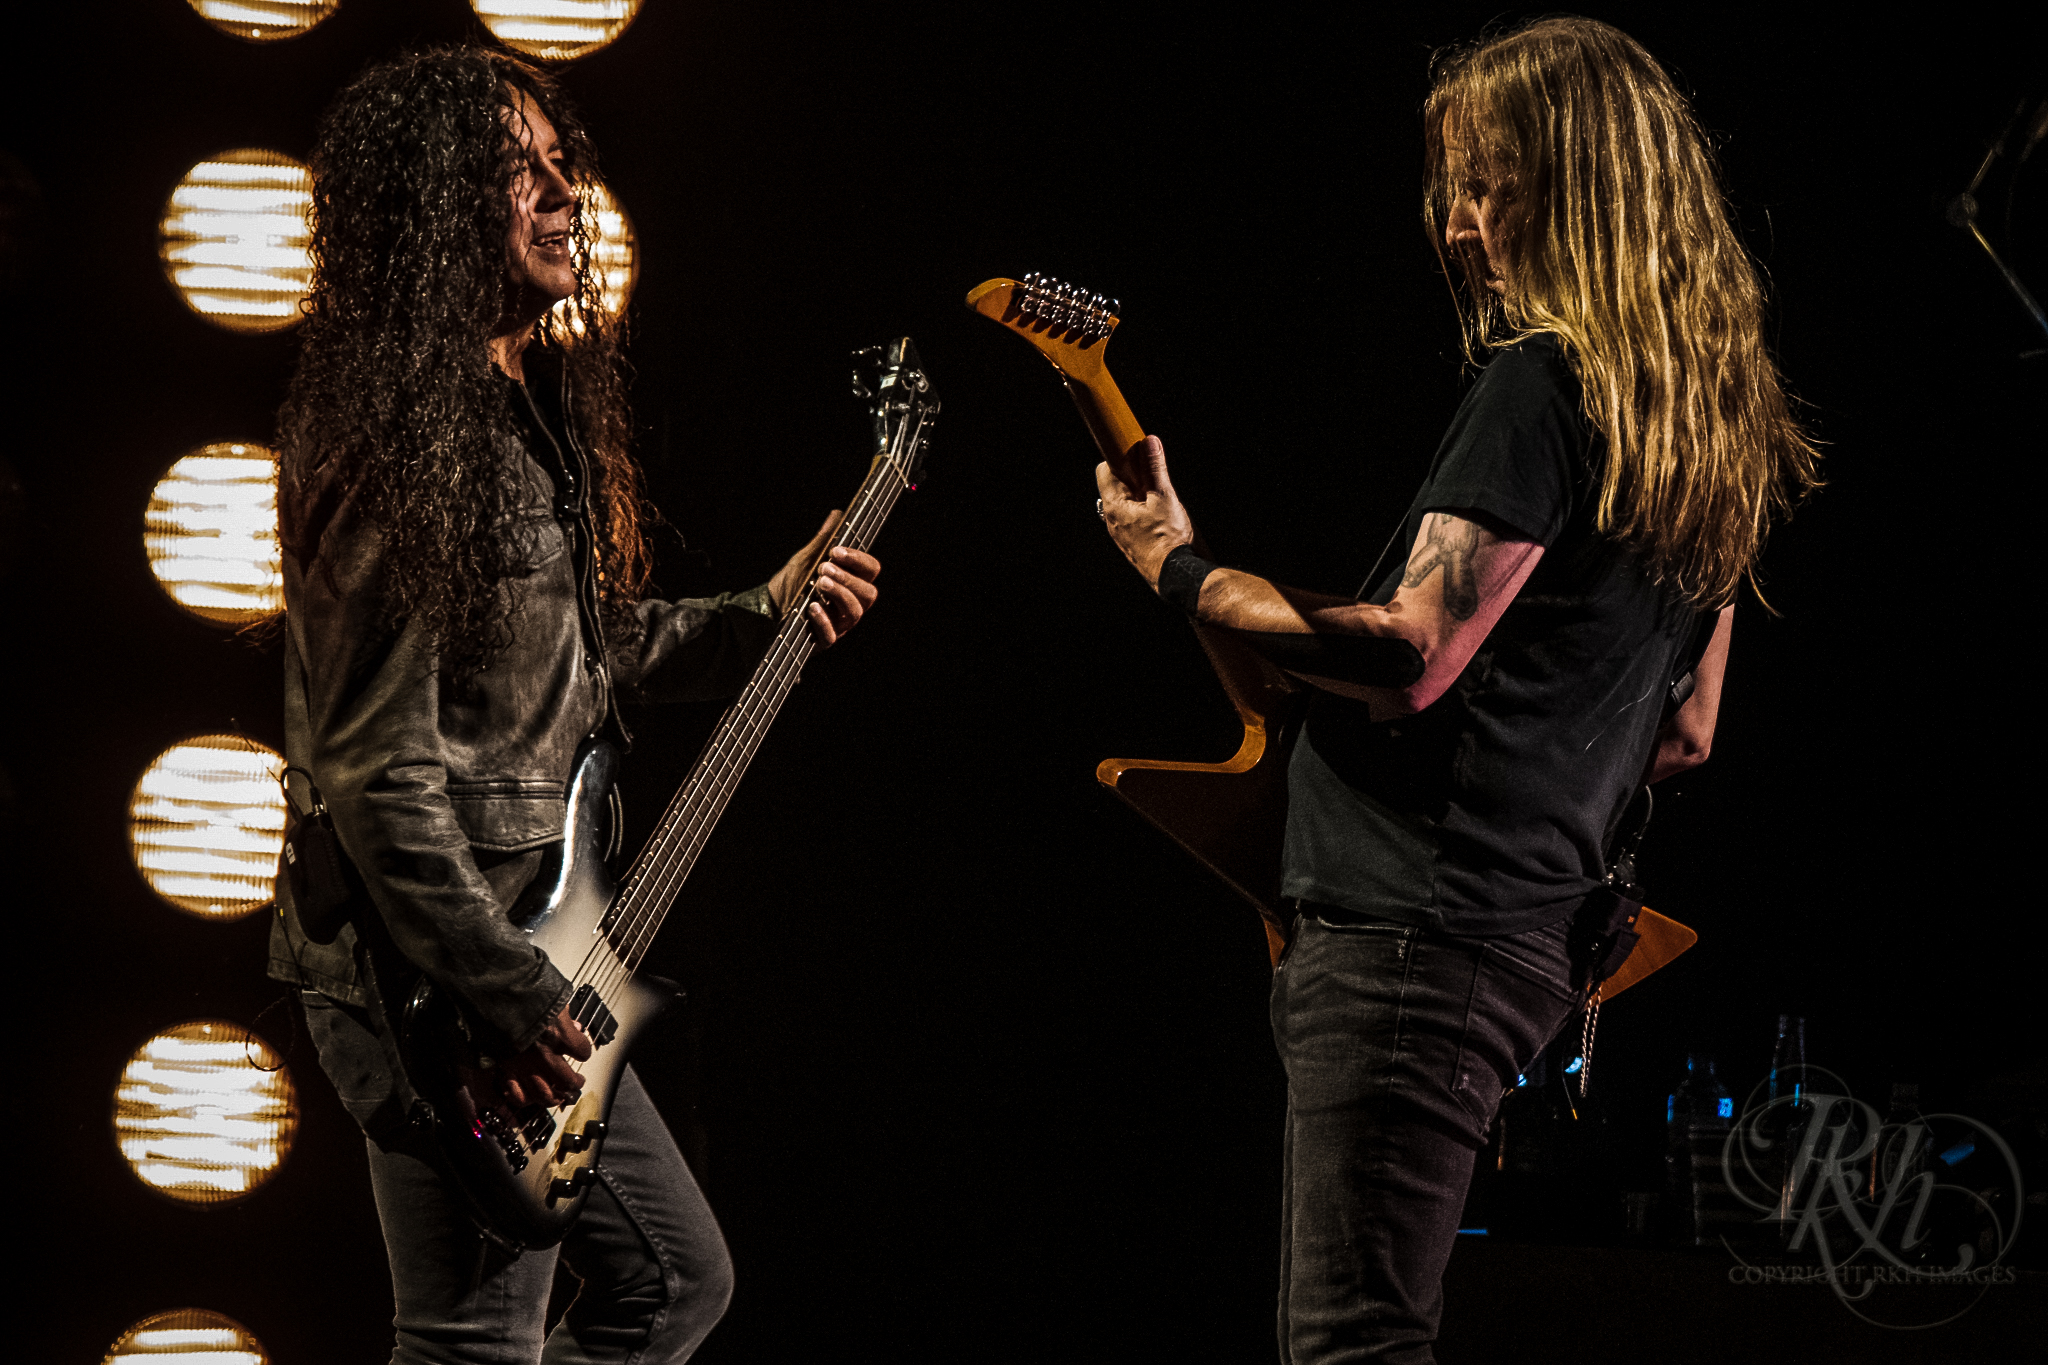 Alice in Chains - RKH Images - The Armory - Minneapolis, Minnesota  (10 of 15).jpg